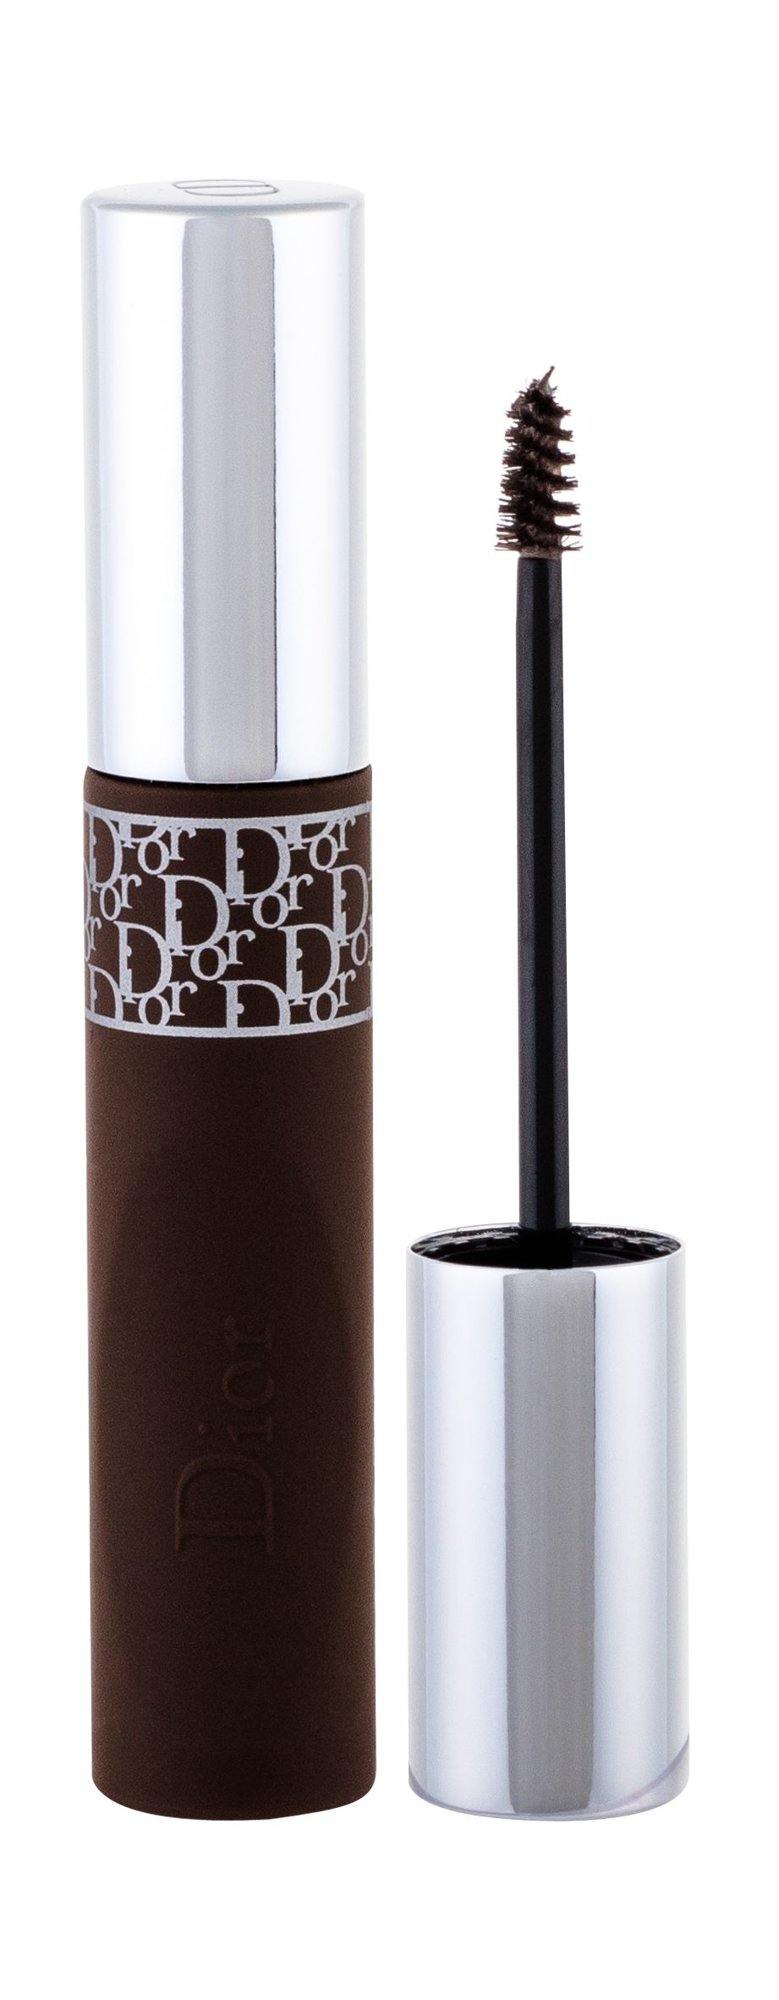 Christian Dior Diorshow Mascara 5ml 002 Dark Brown